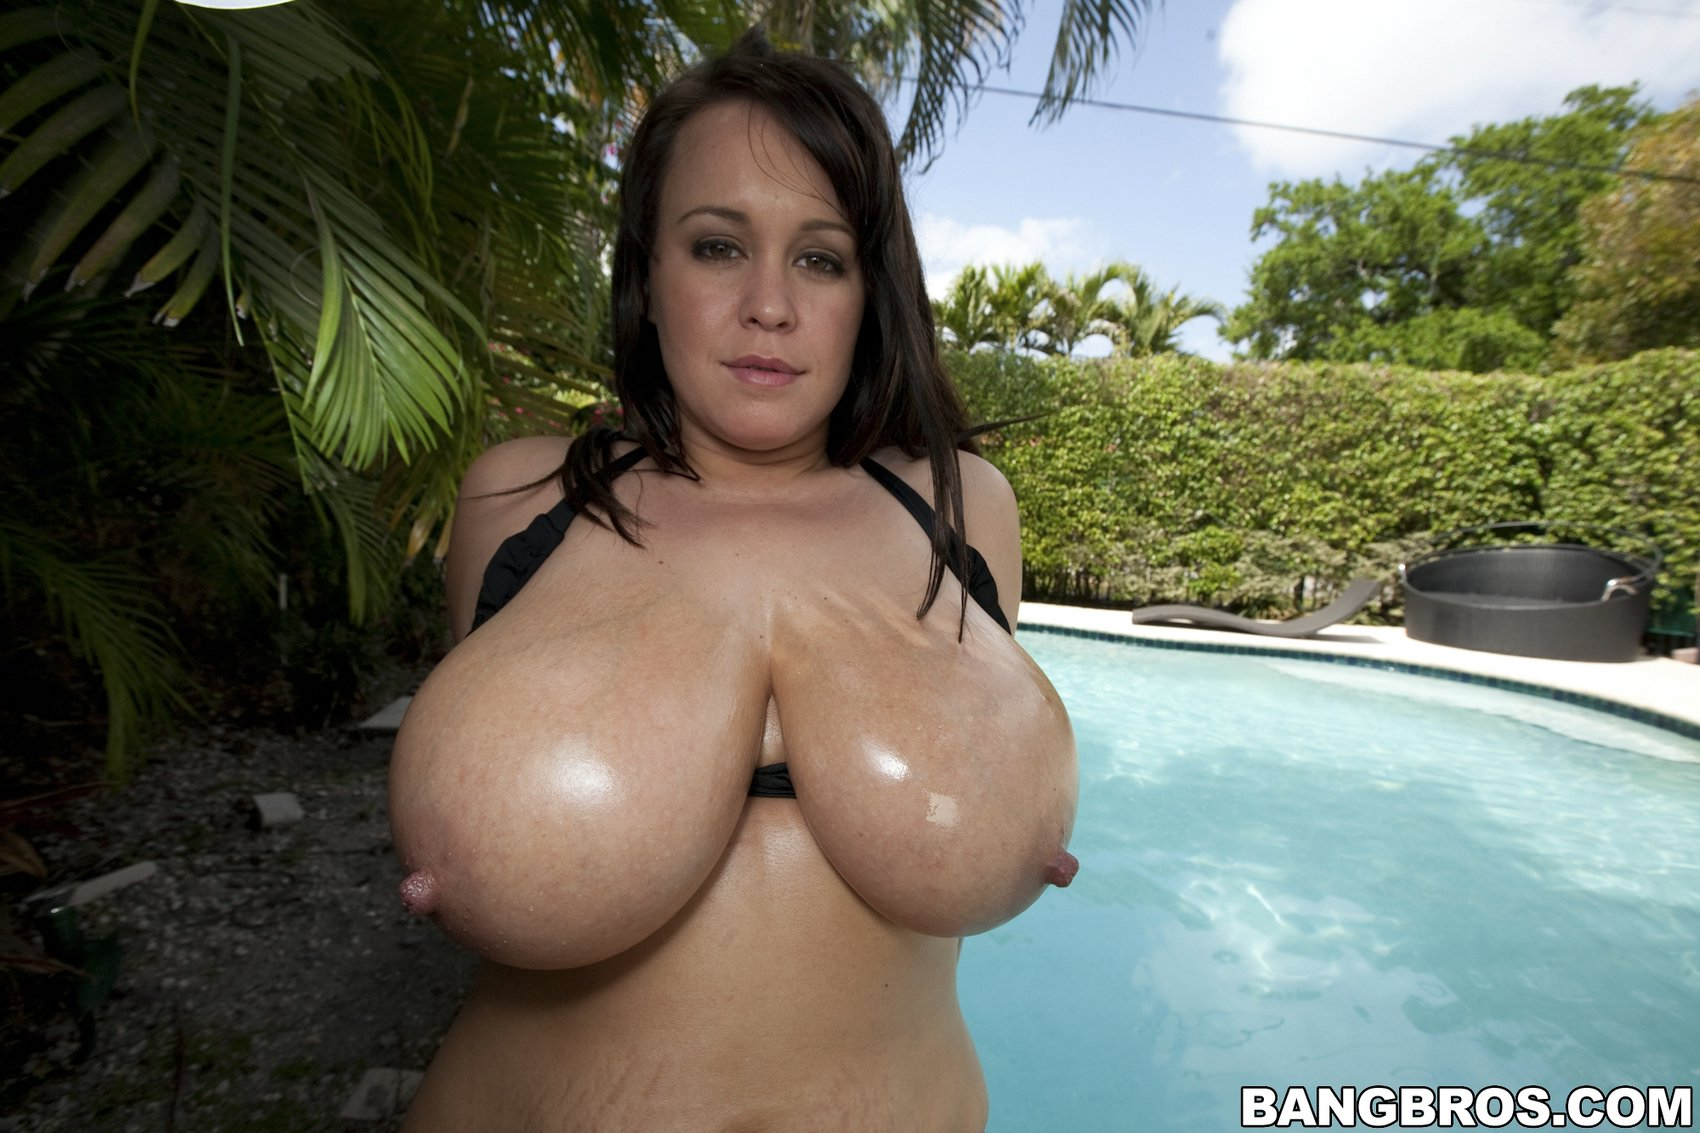 Showing my tits outdoors